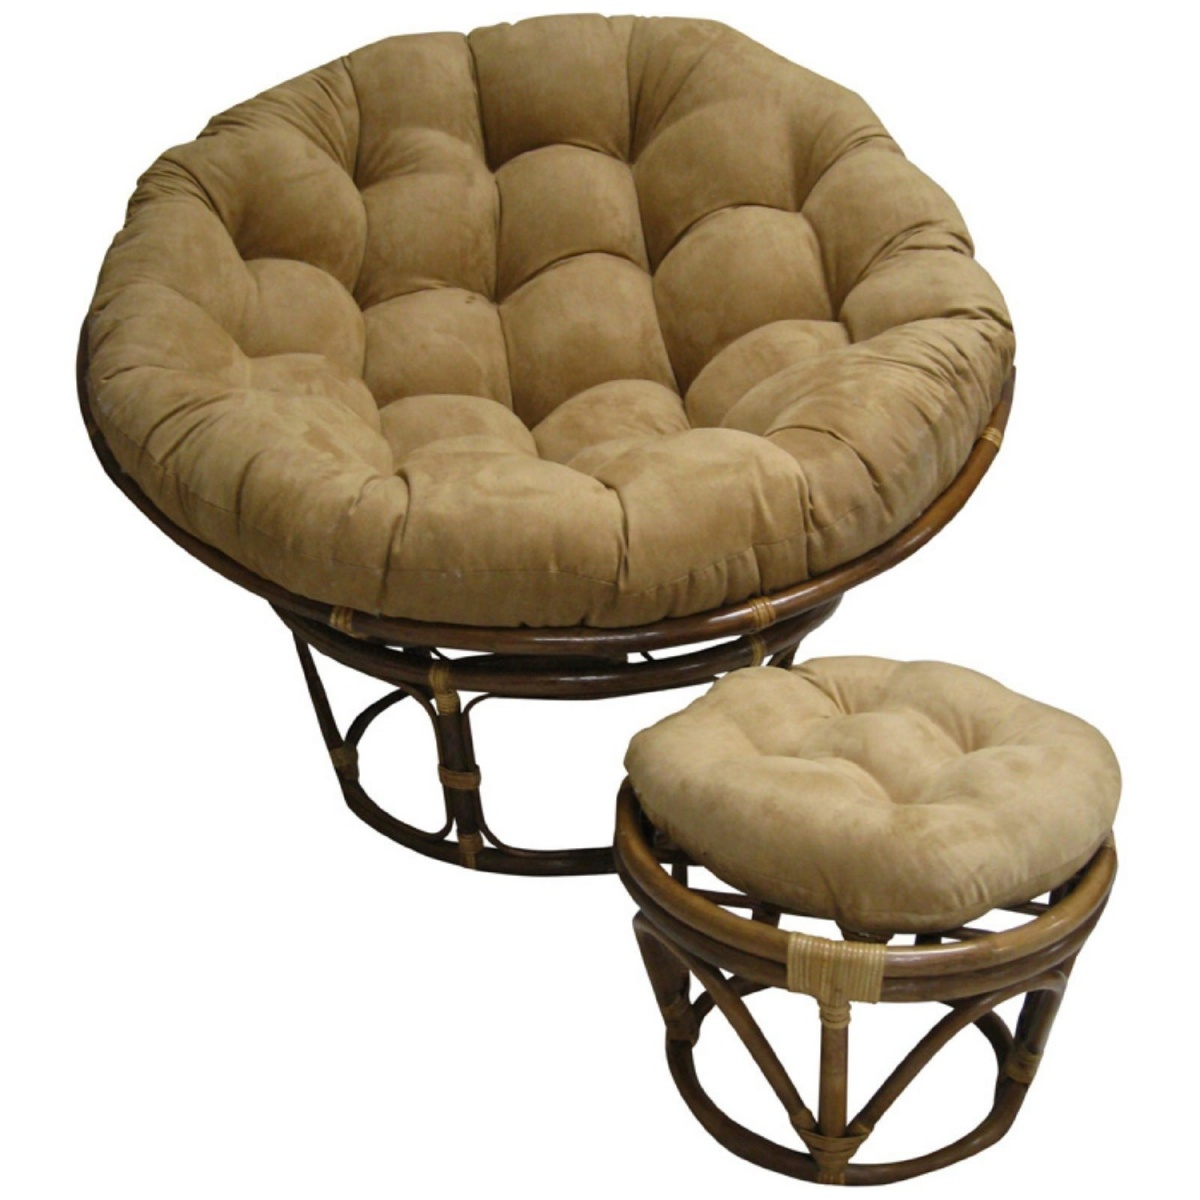 pier 1 circle chair dining room chairs recovered furniture classy design ideas by one wicker peir patio imports